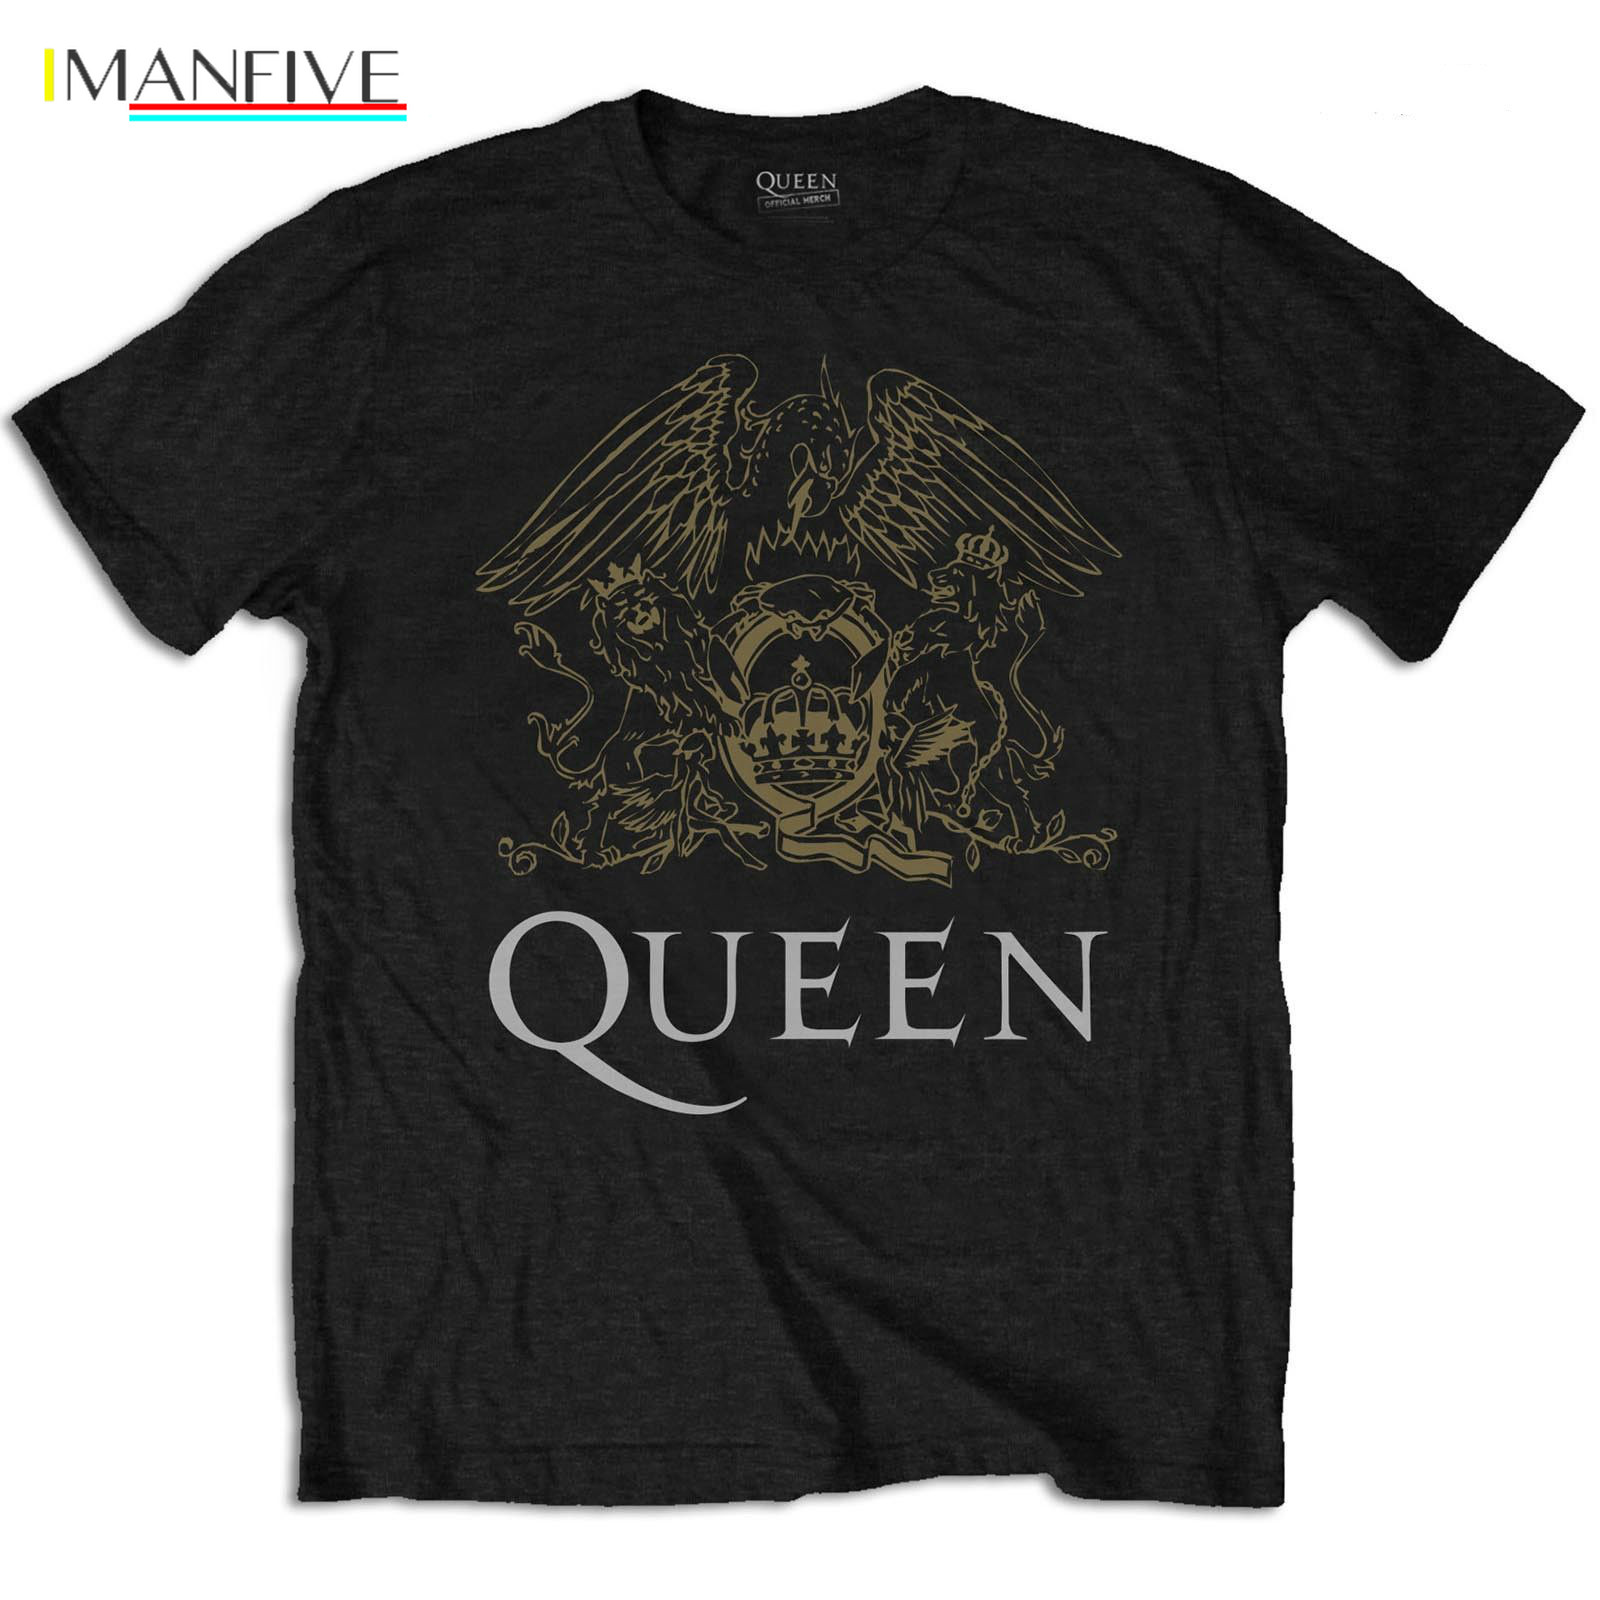 Official T Shirt QUEEN Bohemian Rhapsody Black CREST Classic All Sizes T-Shirts 2019 Brand Clothes Slim Fit Printing Basic Tops